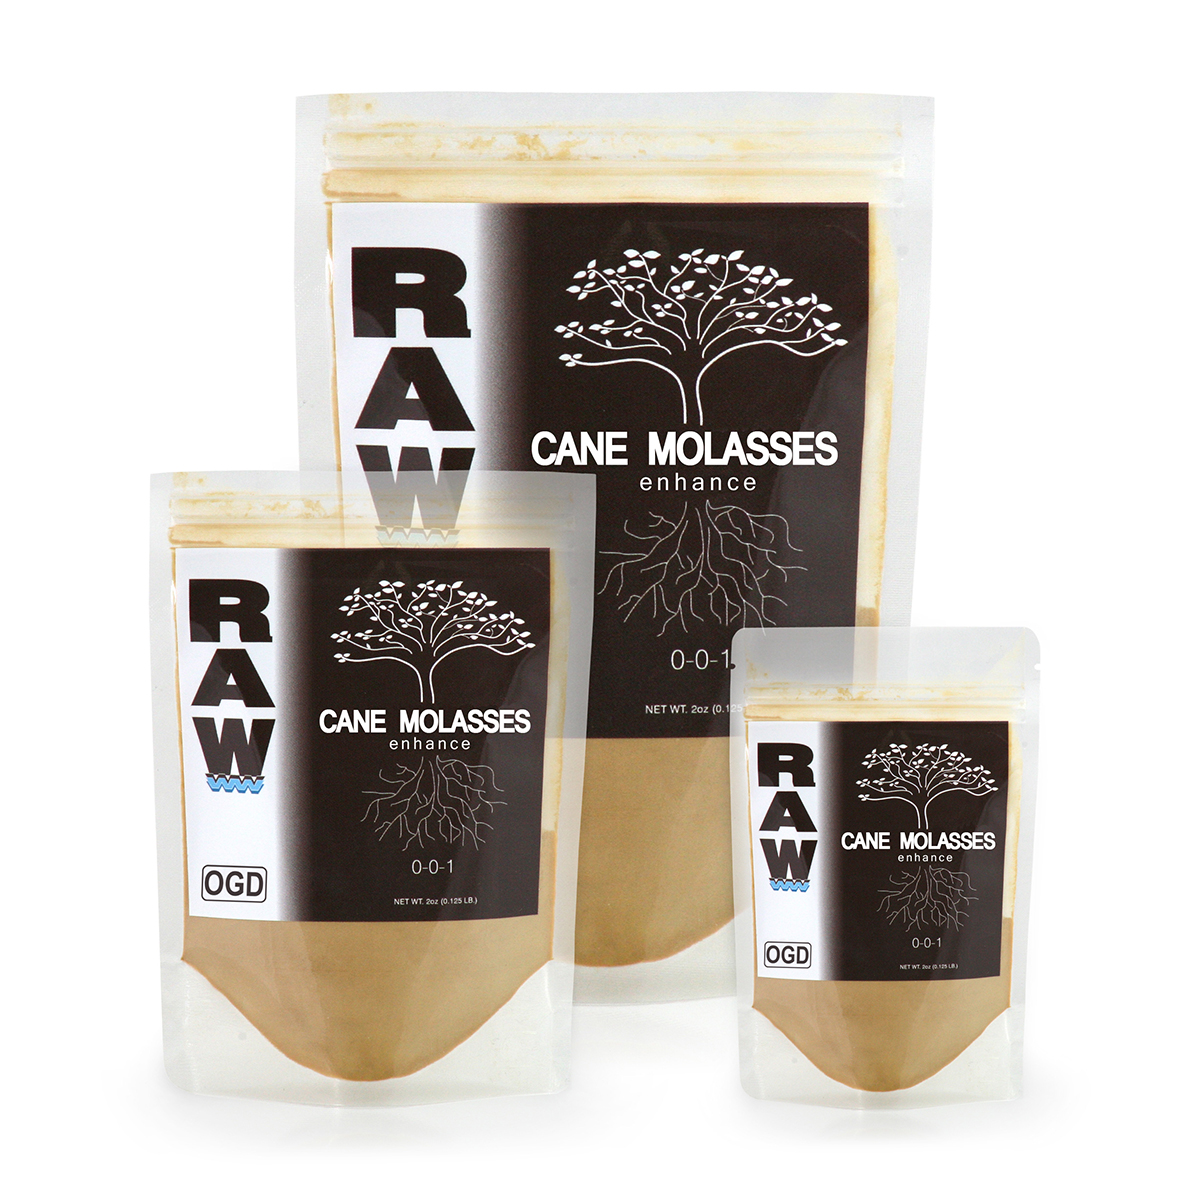 NPK RAW Cane Molasses 2 LBS